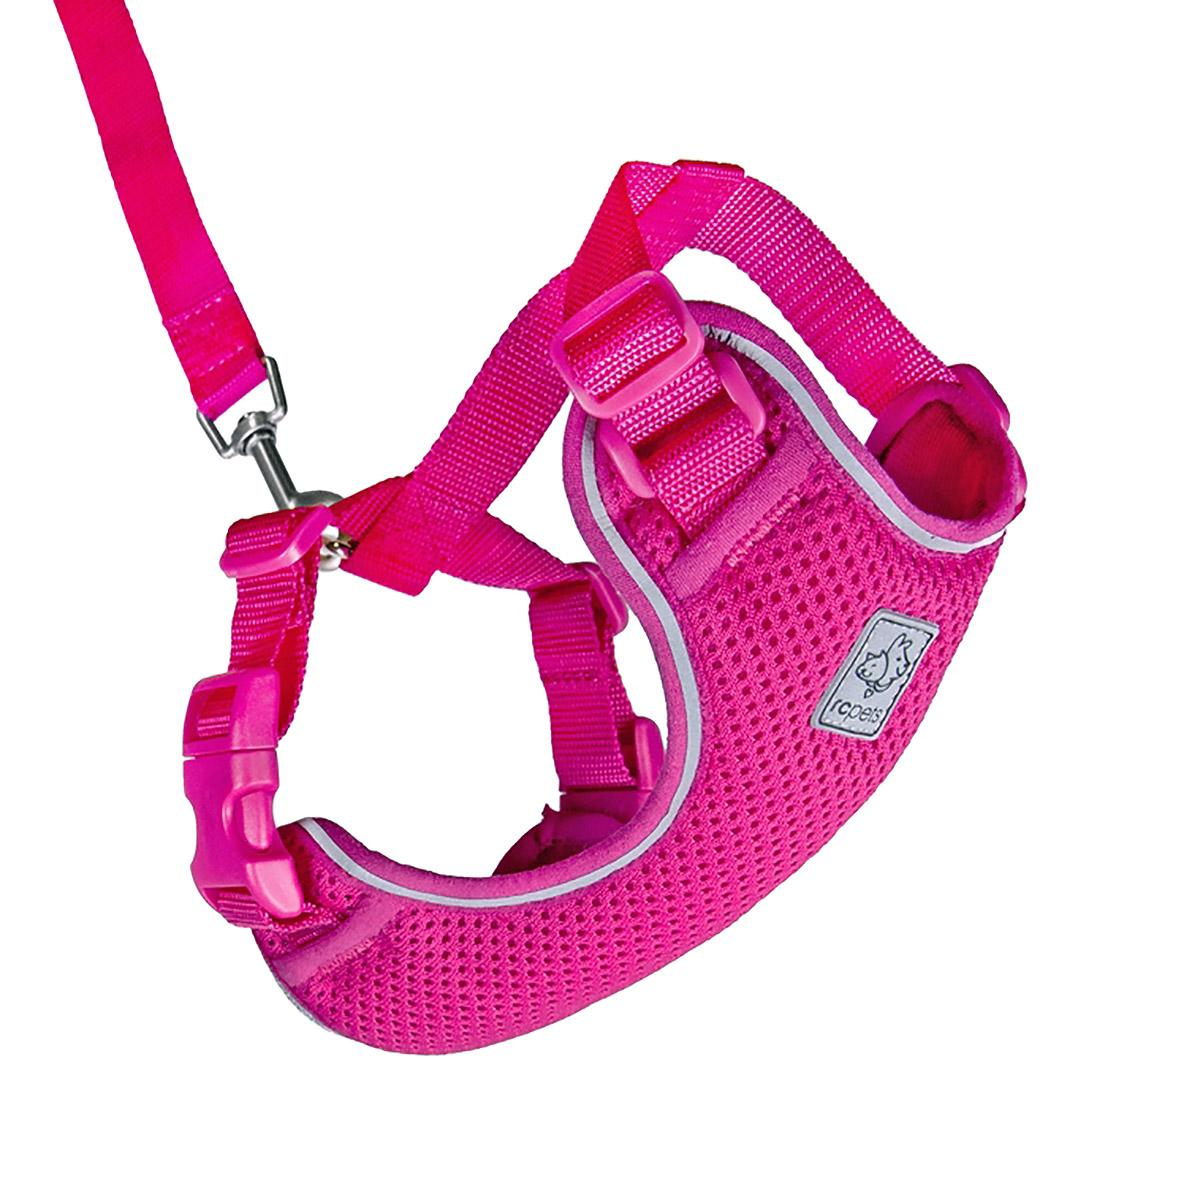 Adventure Kitty Cat Harness With Leash By Rc Pet - Raspberry - Large - Walmart Com